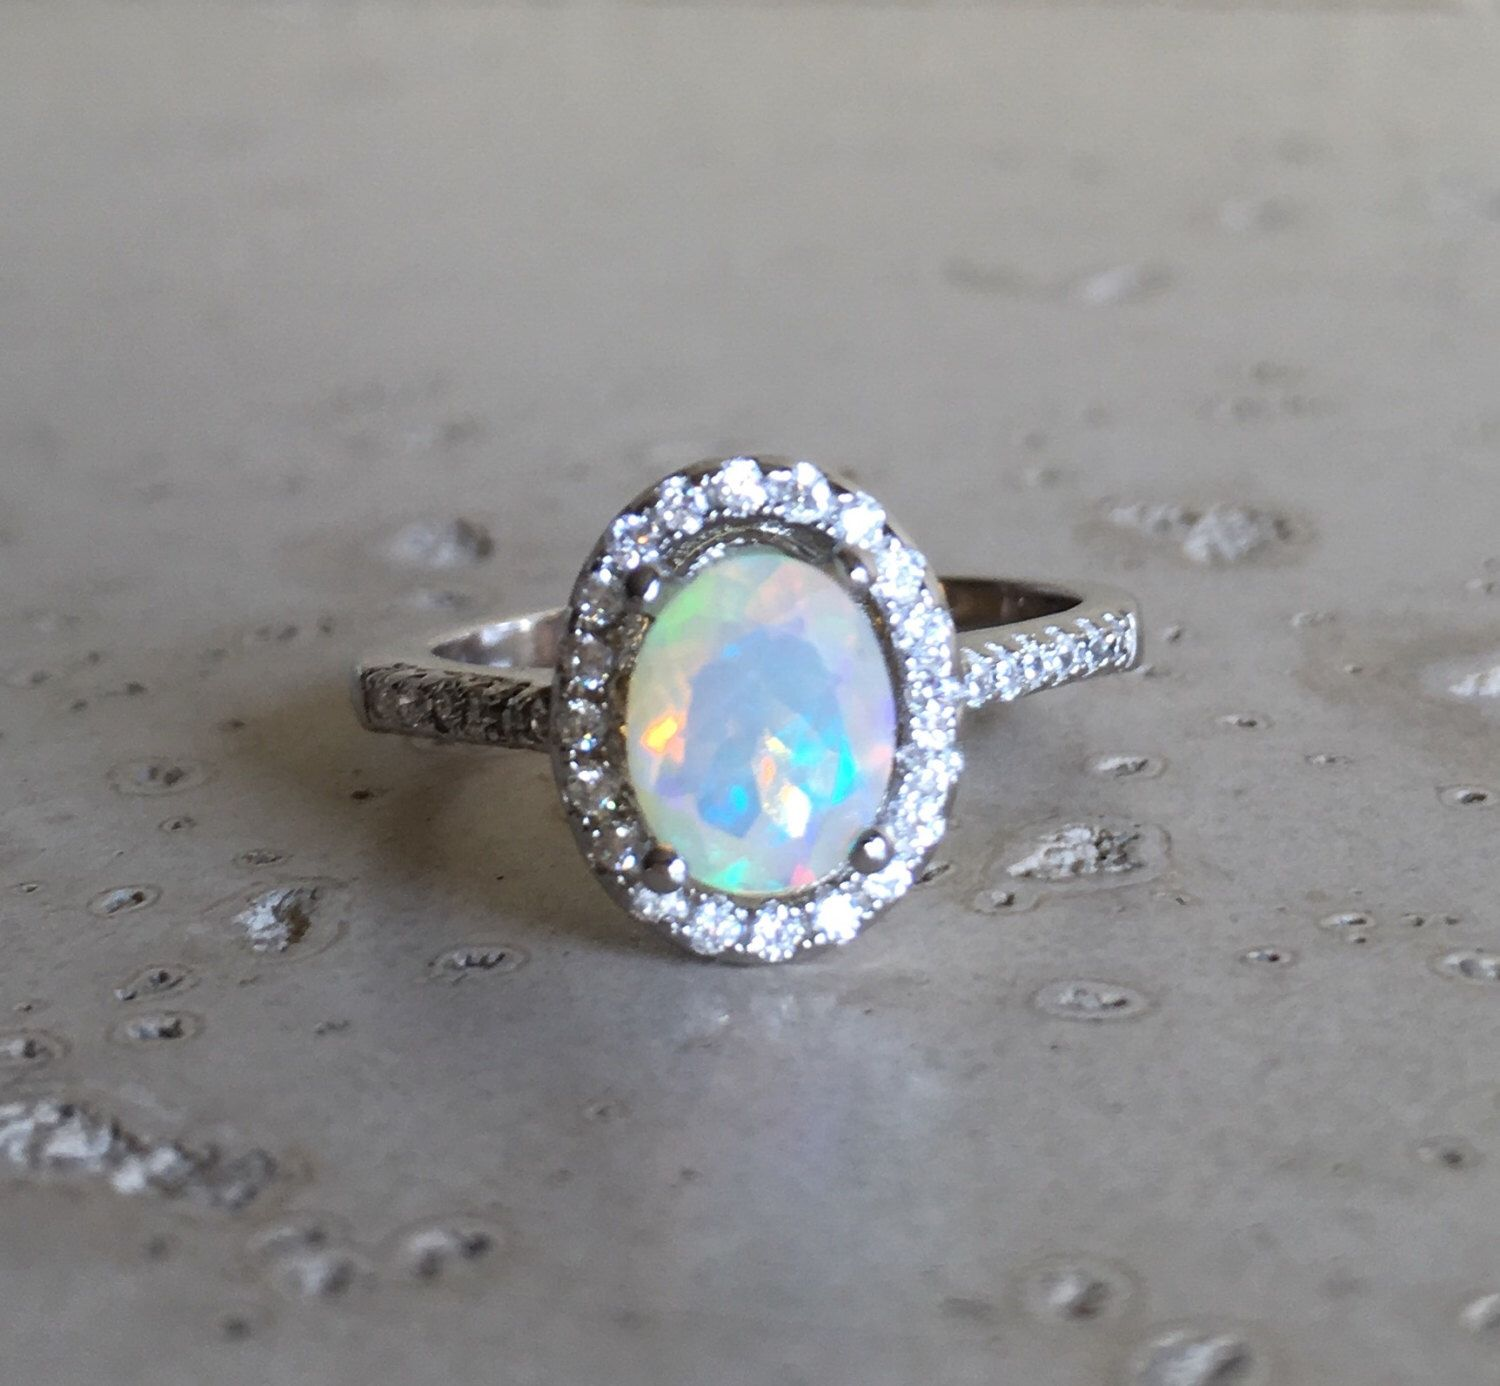 engagement hammer rings ring photo october the gem modern wedding for birthstone gemstones alternate of regarding